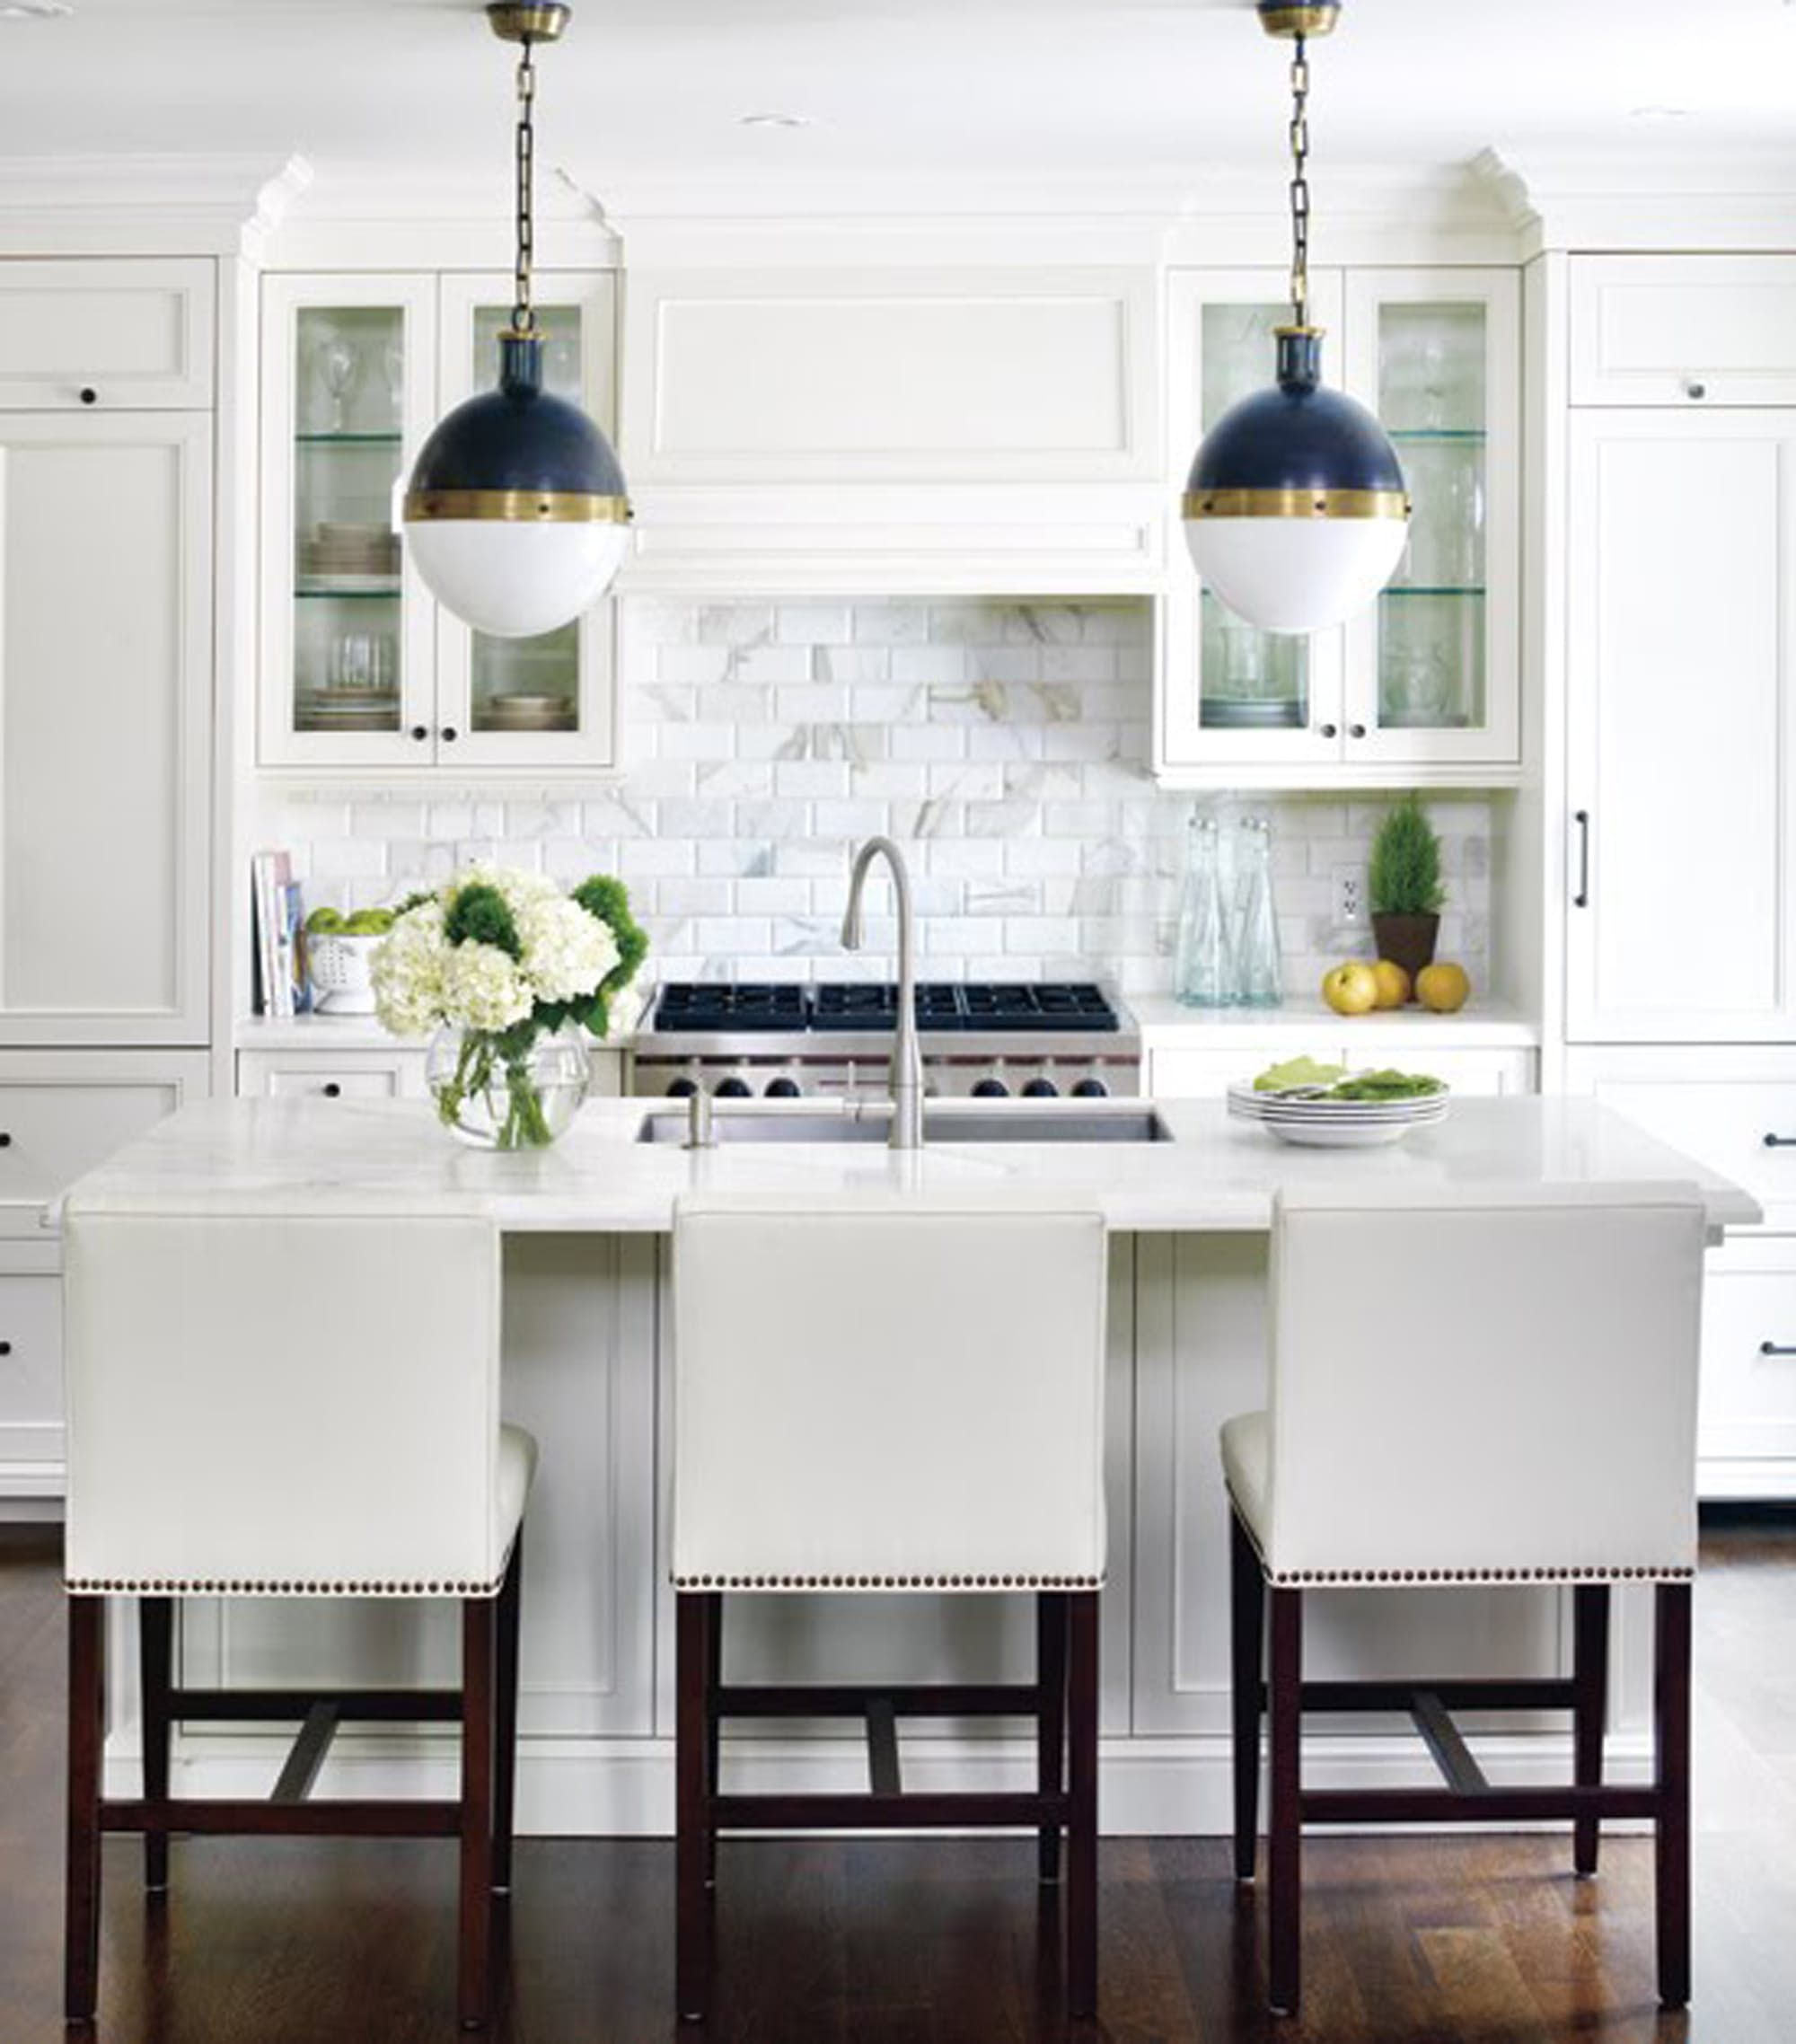 Soft white kitchen with marble subway tile backsplash cabinets topped with crown molding a custom panel to cover range hood nailhead trim counter stools